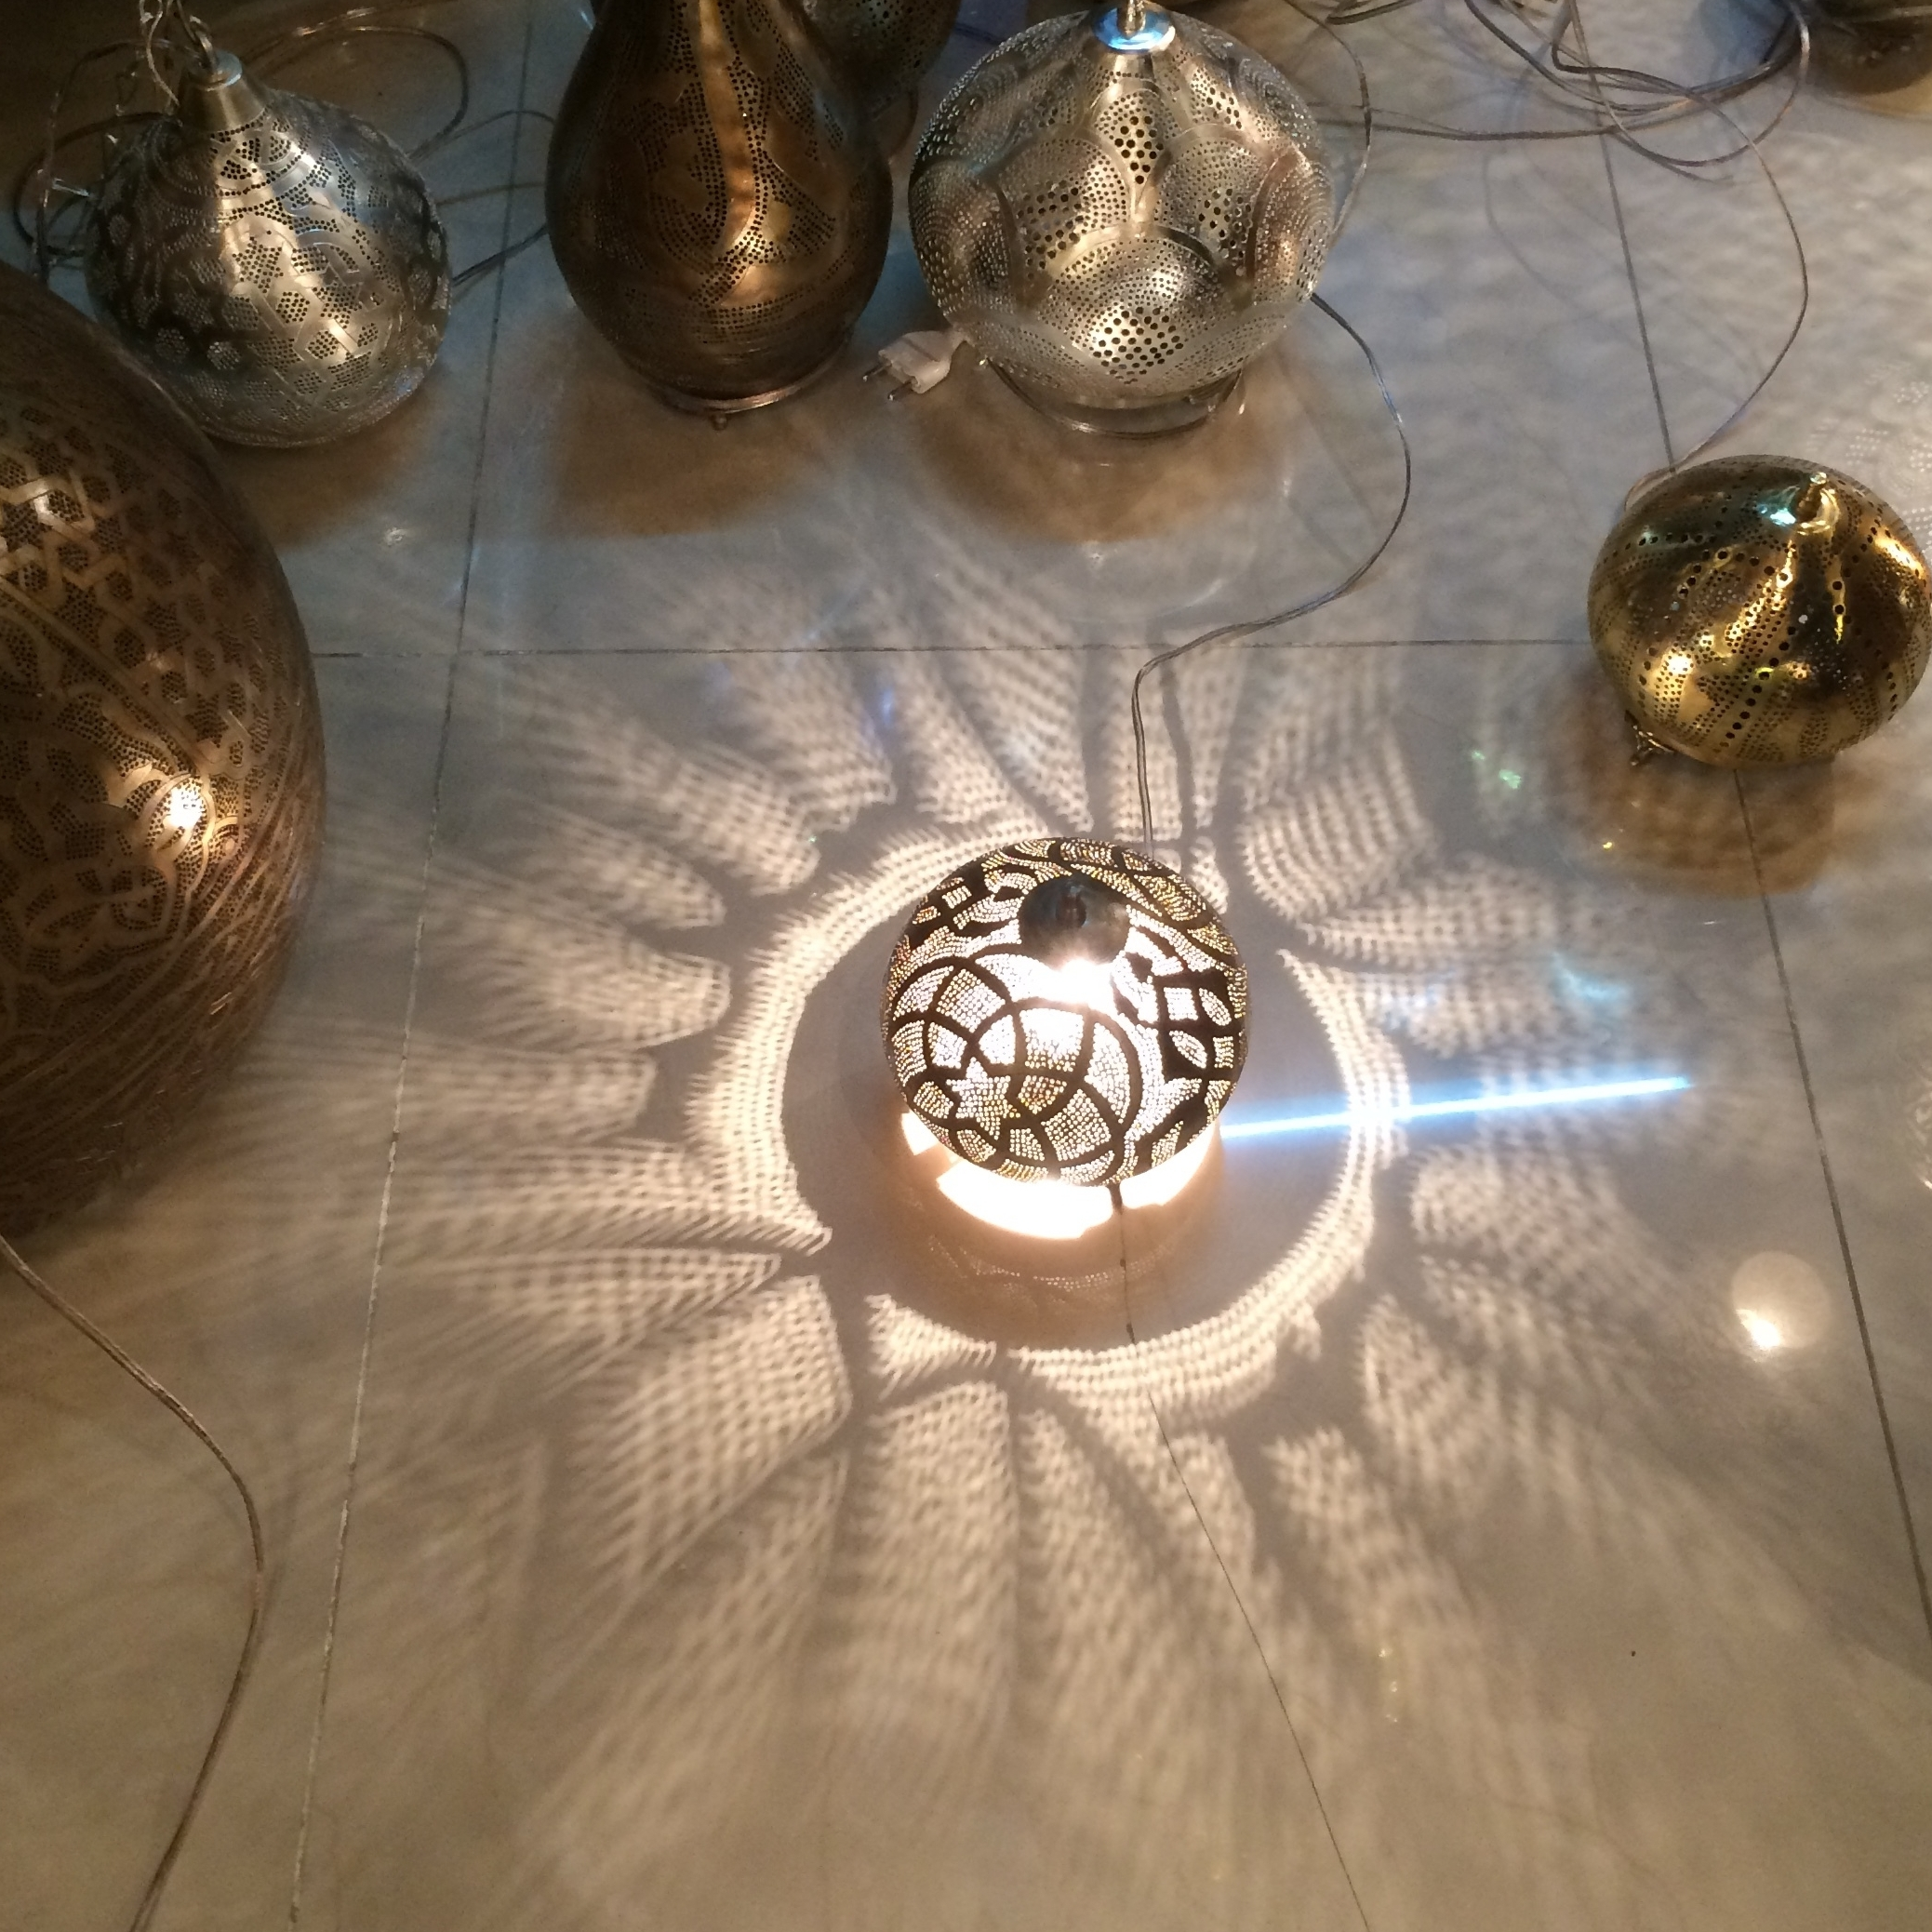 Hand punched metal lamps.